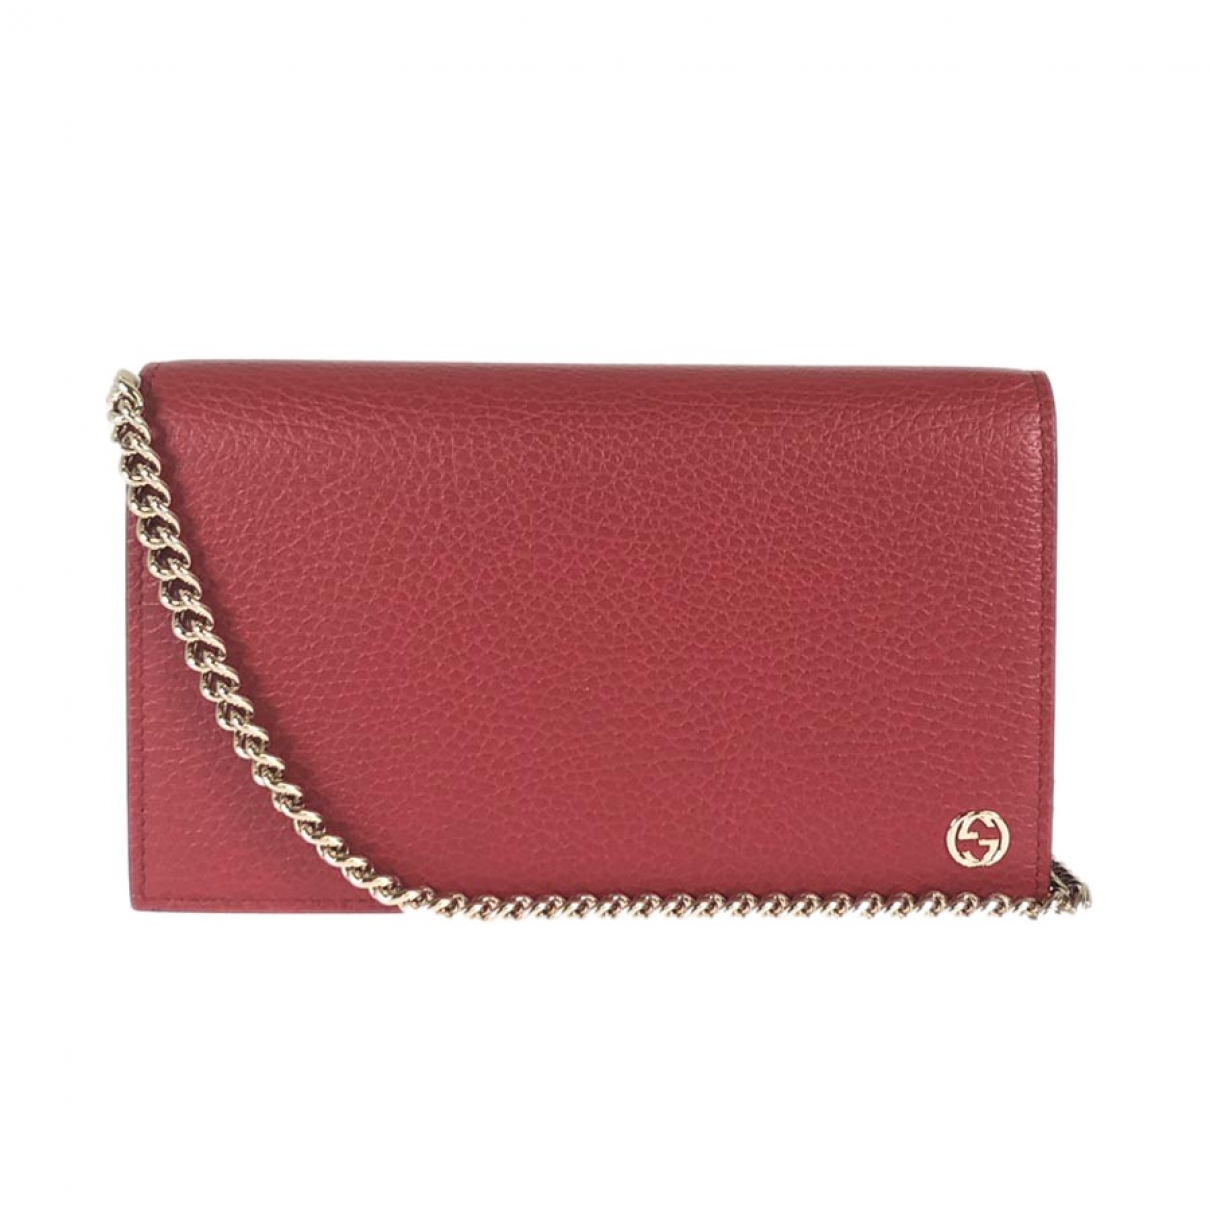 Gucci \N Red Leather Clutch bag for Women \N